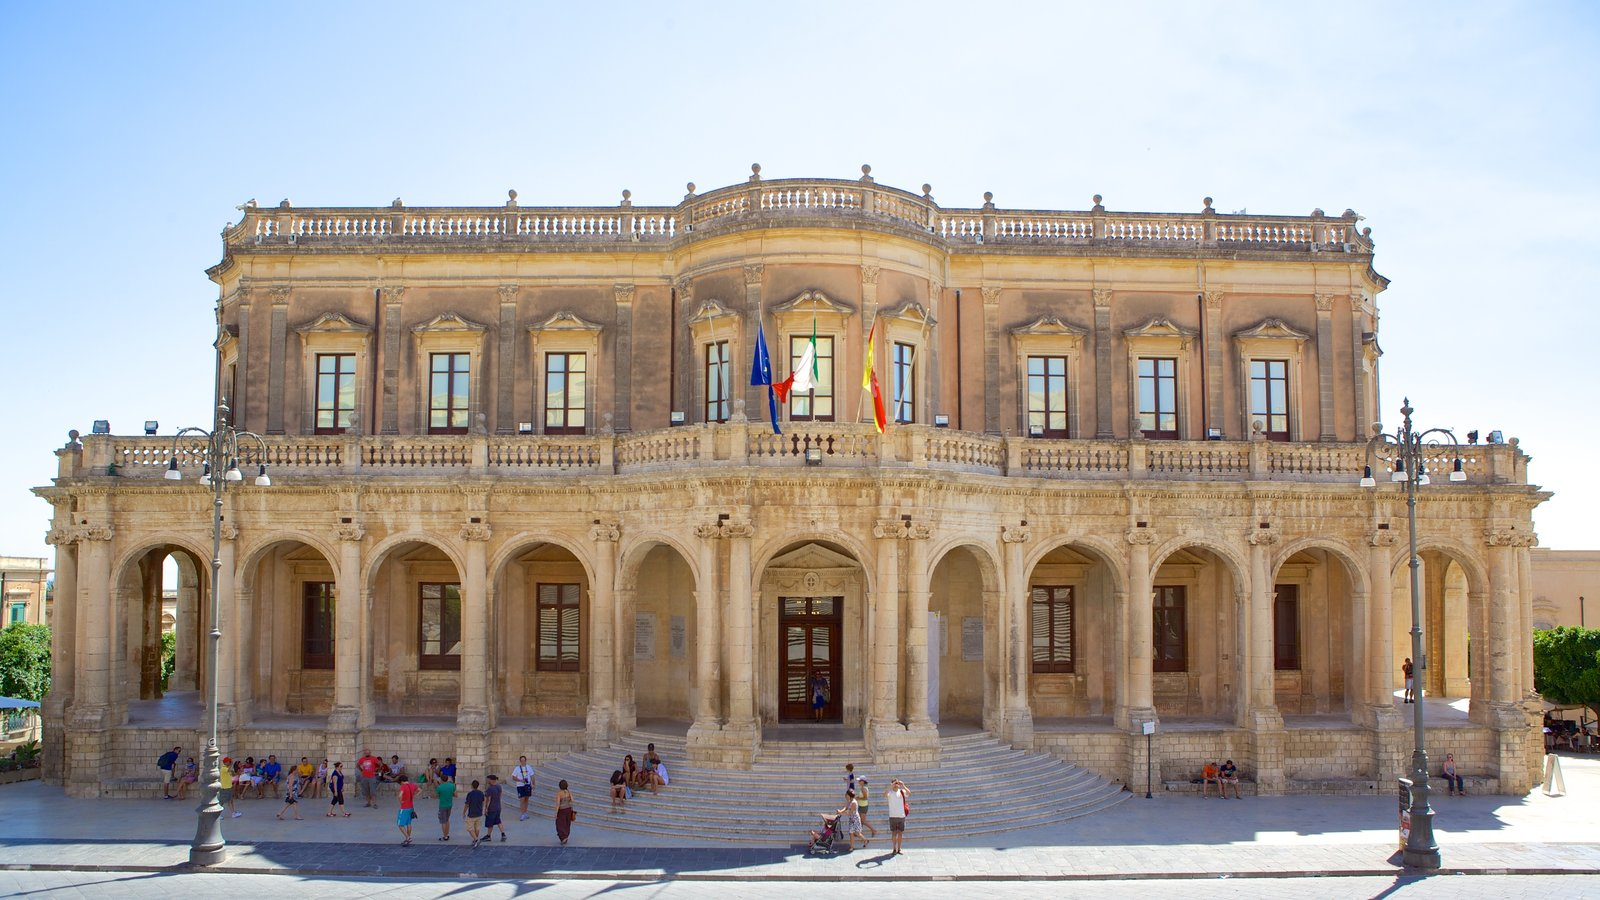 Ducezio Palace showing street scenes, heritage architecture and heritage elements